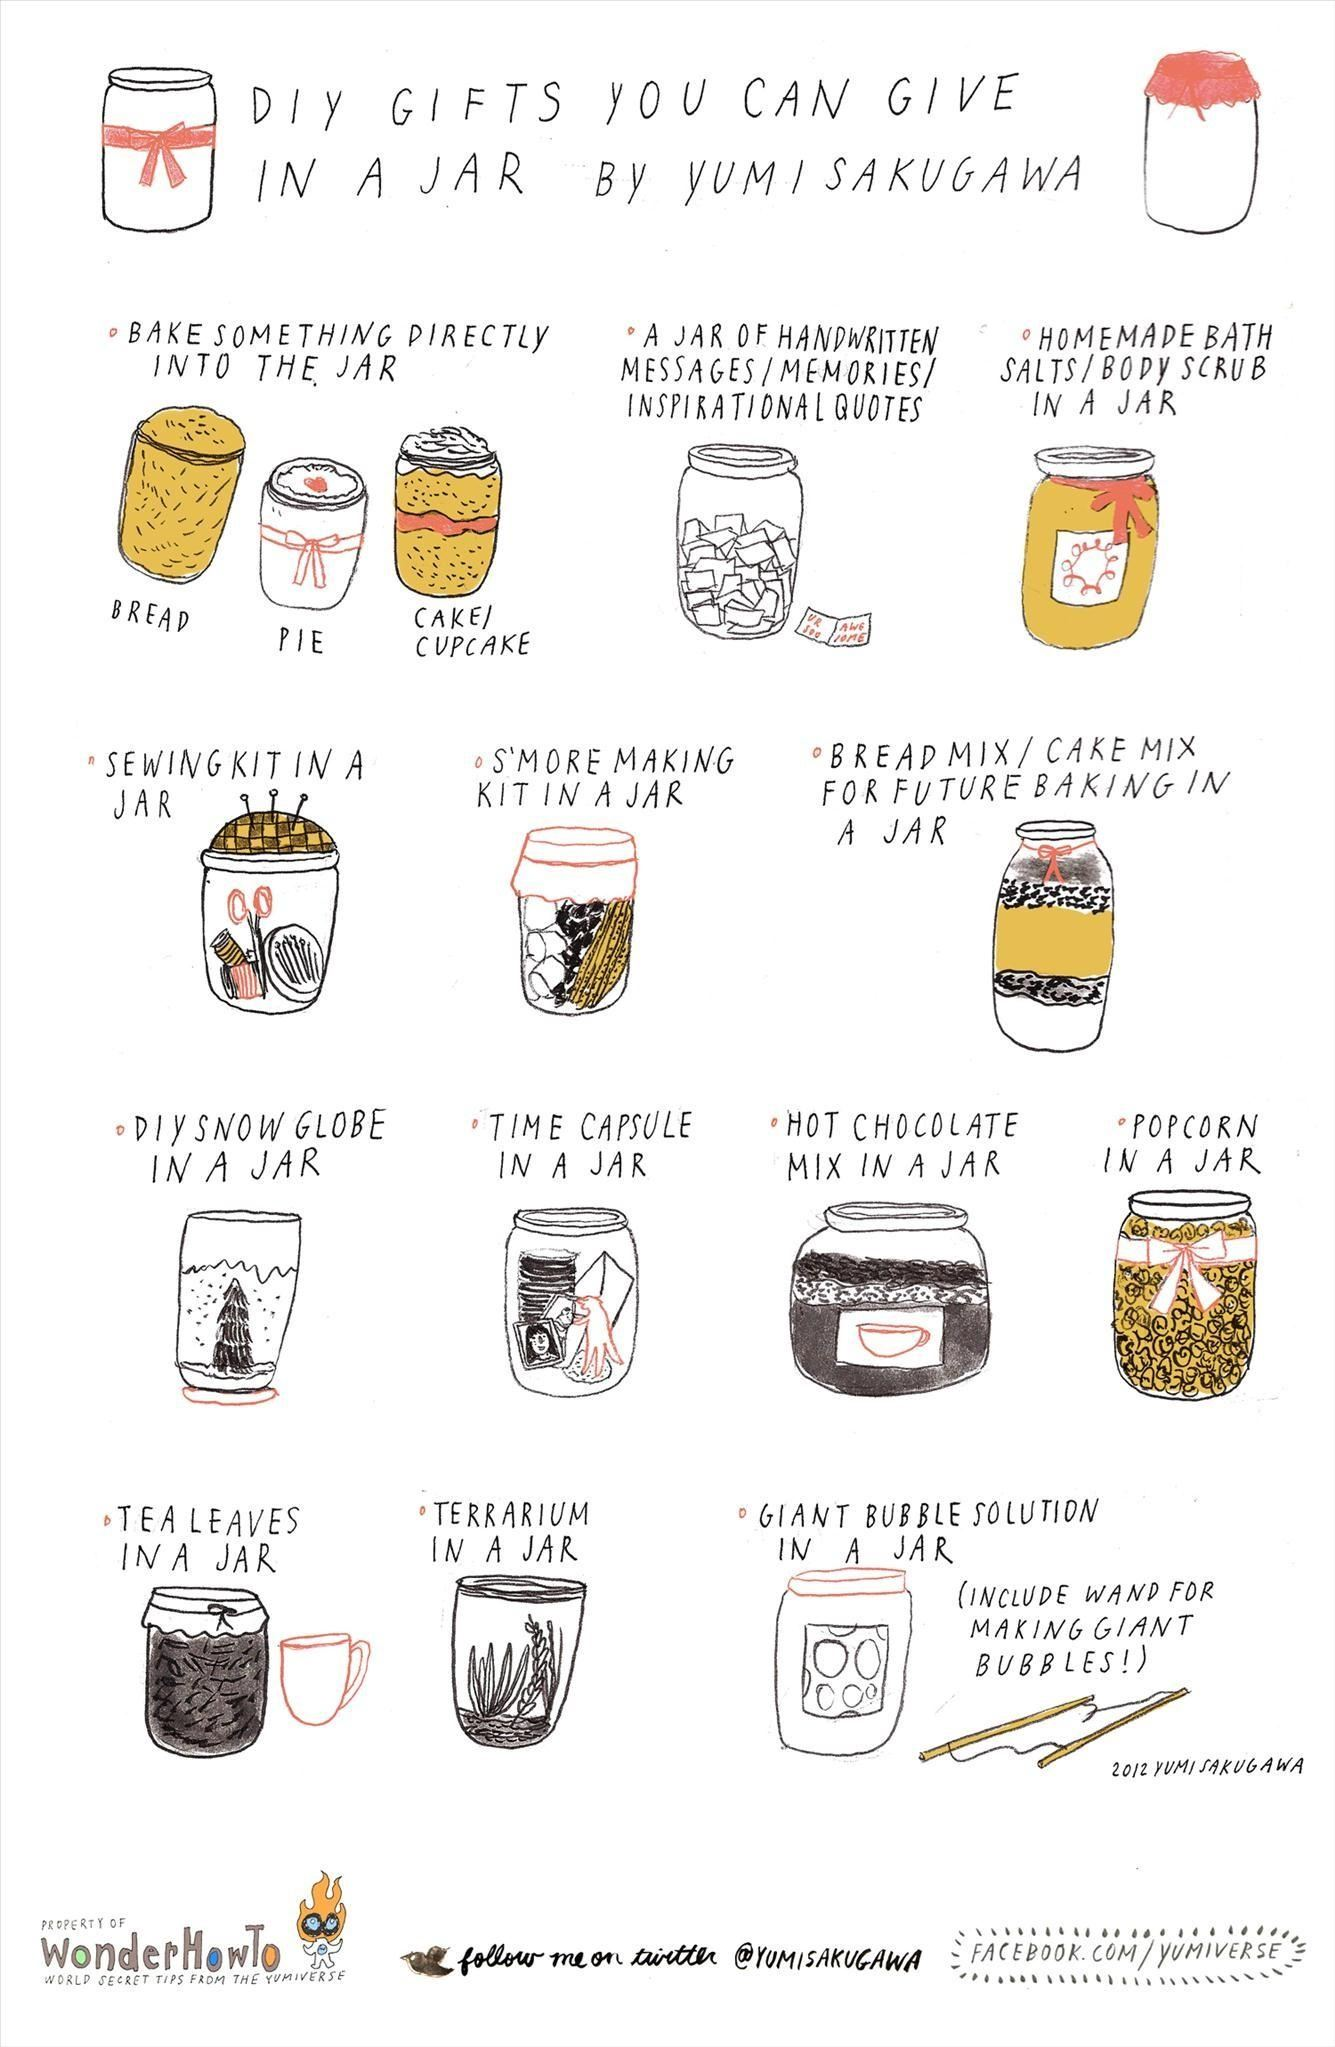 13 Easy DIY Christmas Gifts That You Can Stuff in a Jar